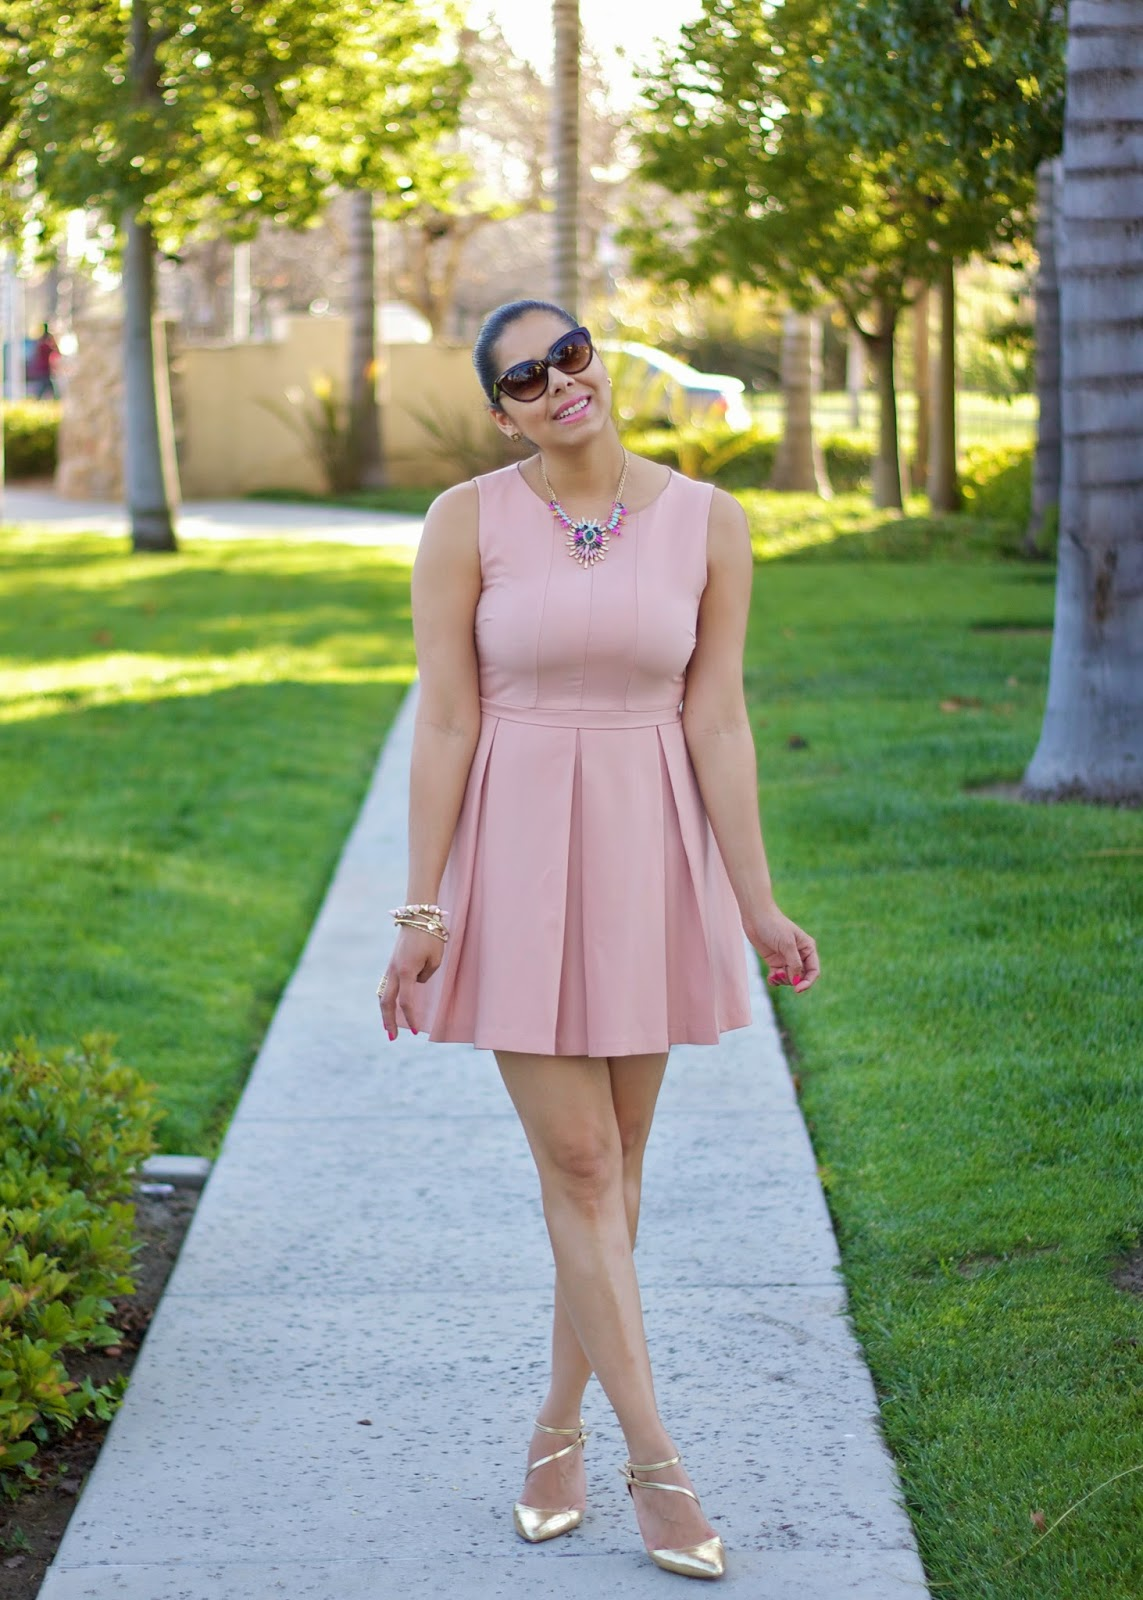 Pale Pink Dress Shoes